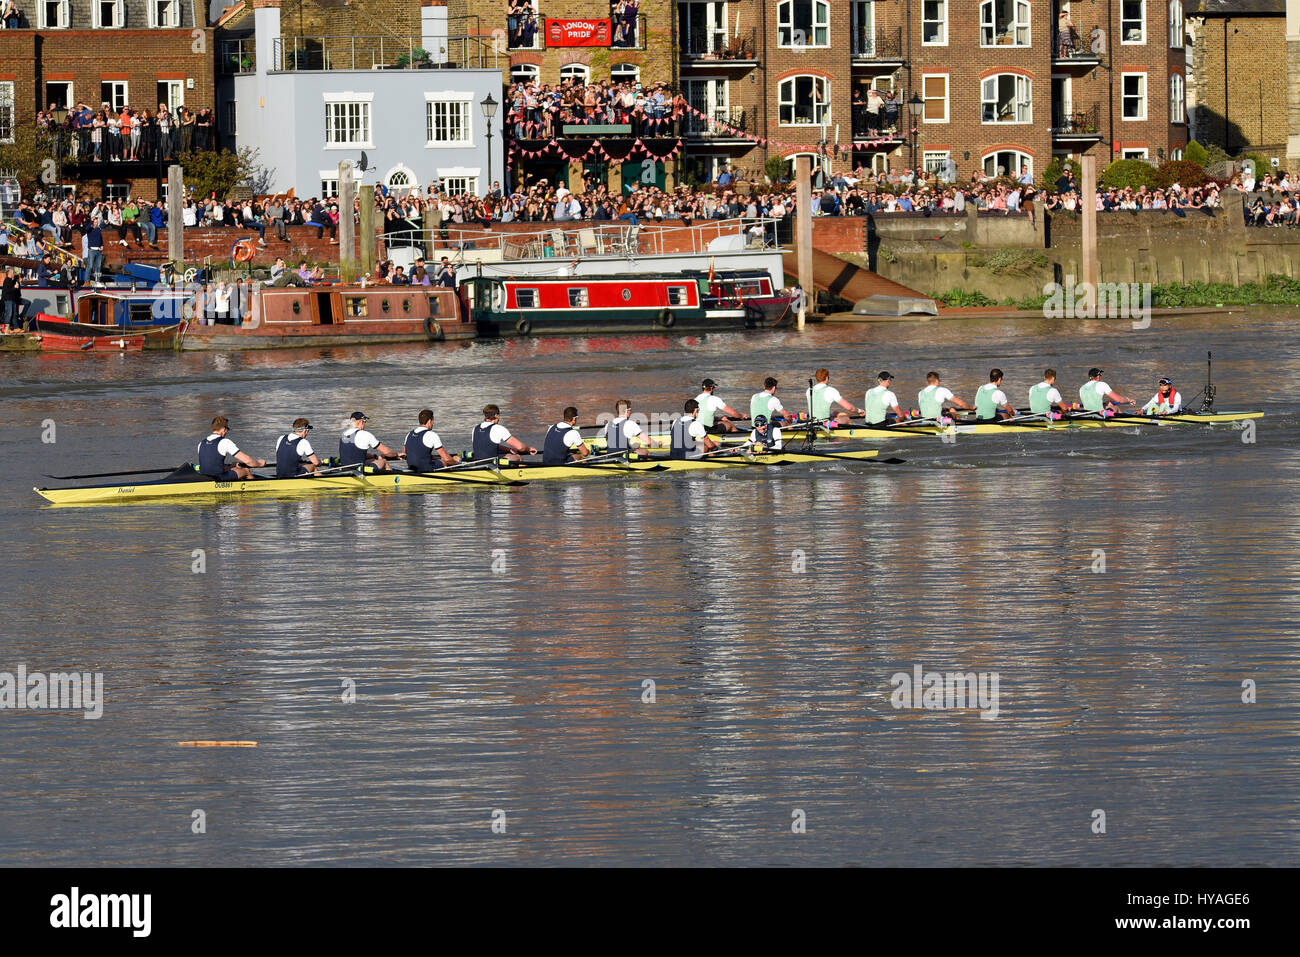 university-boat-race-oxford-v-cambridge-on-the-river-thames-at-barnes-HYAGE6.jpg